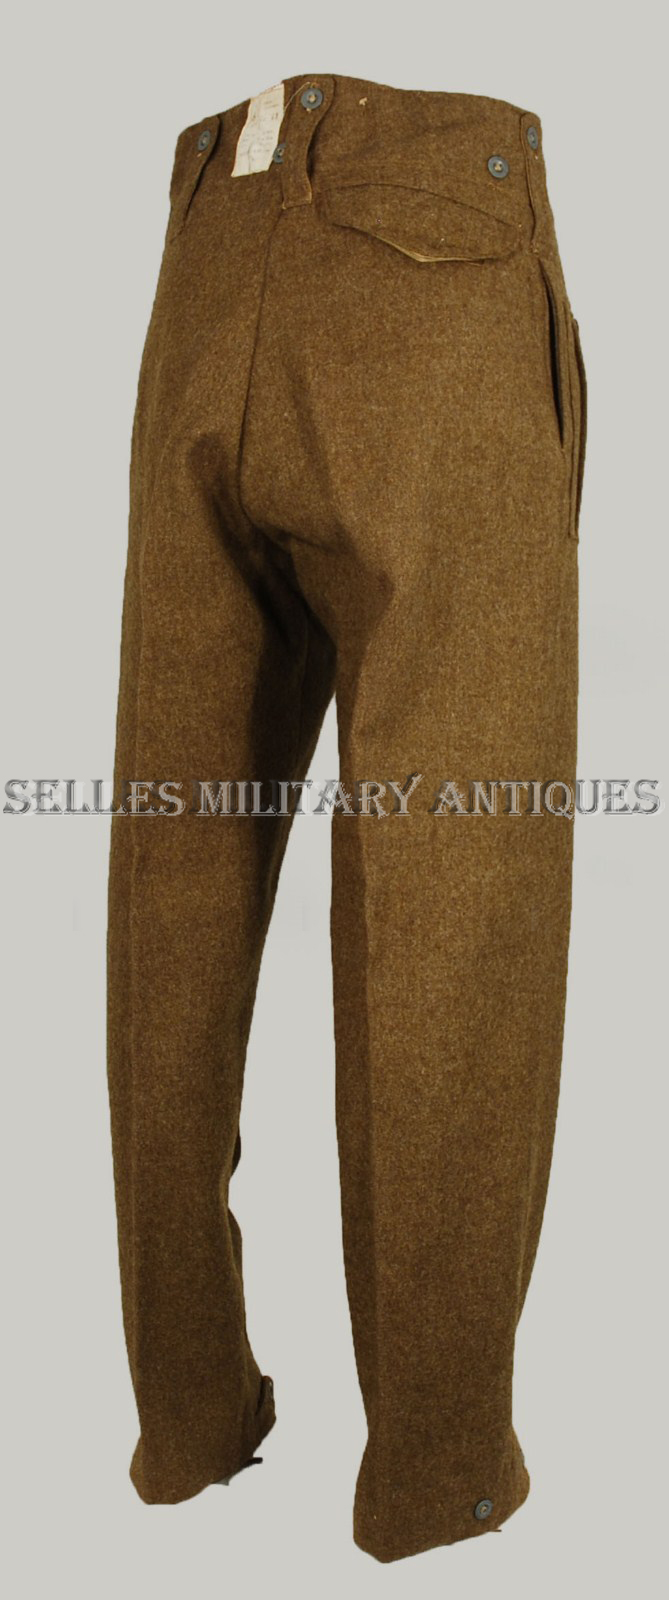 static line military jean michel selles pantalon pattern 37 anglais. Black Bedroom Furniture Sets. Home Design Ideas